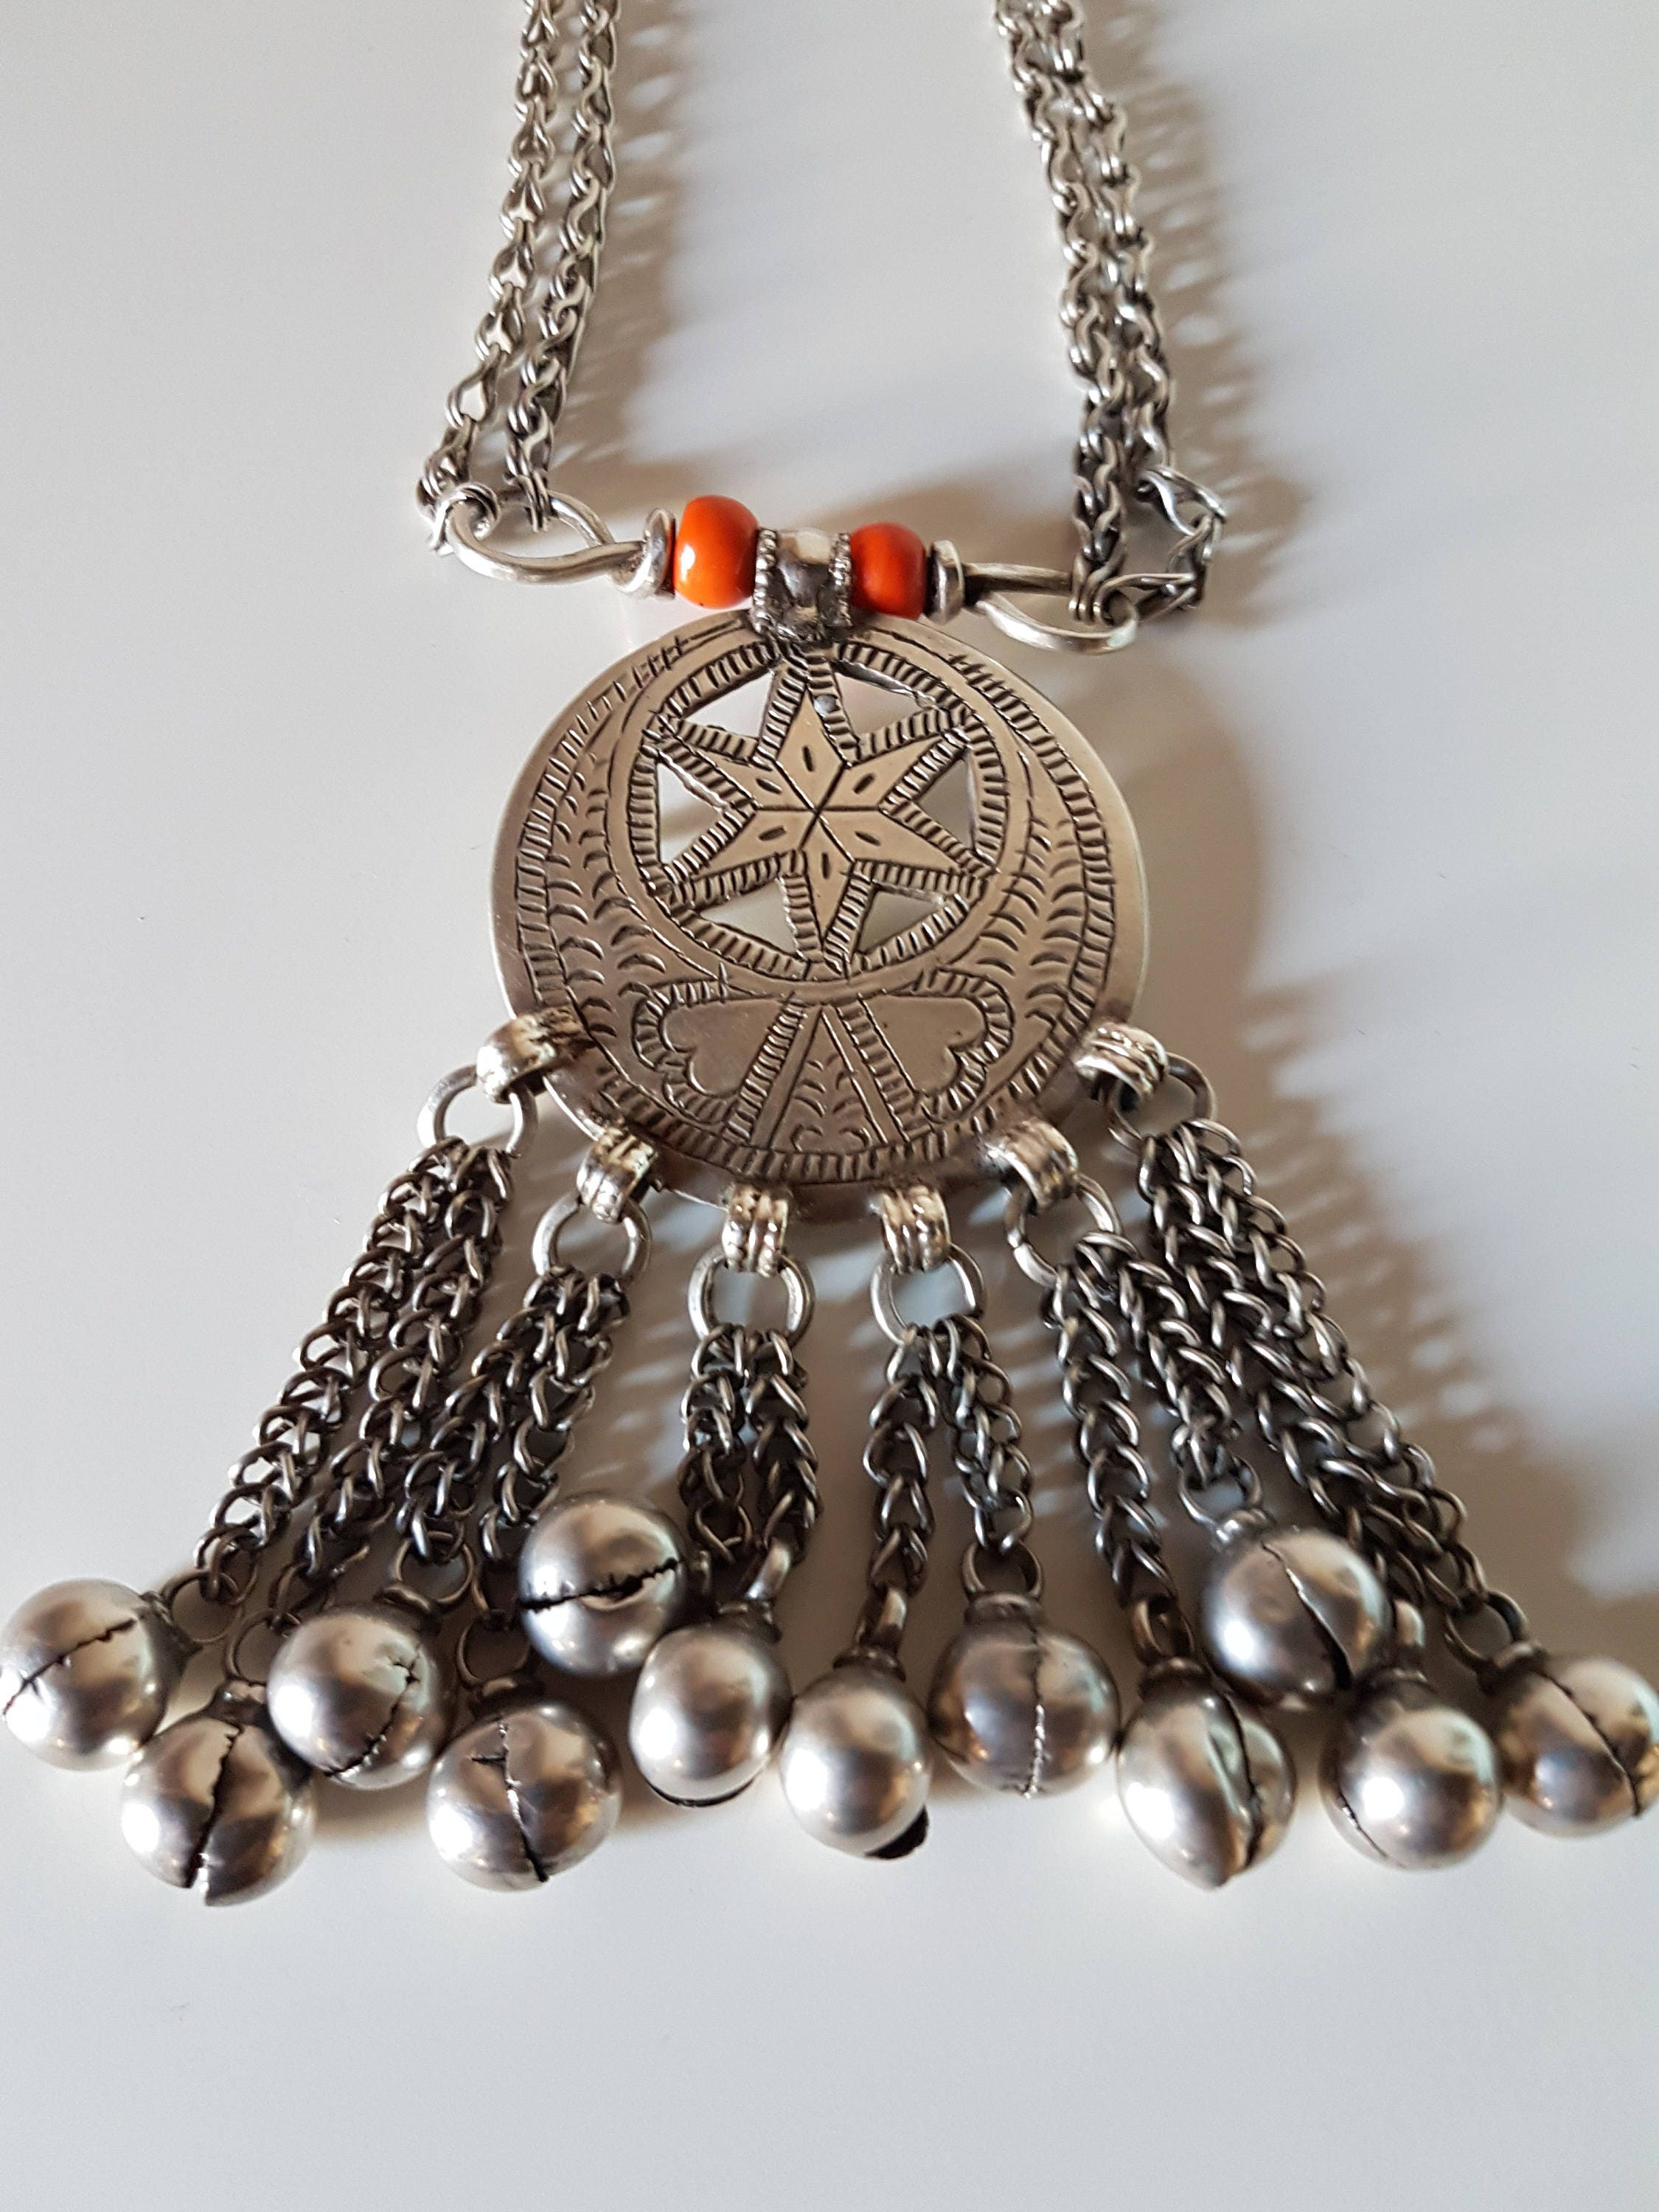 usd long from schafer oaxaca norma necklace berber copper tag coral michoacan cultural navigator